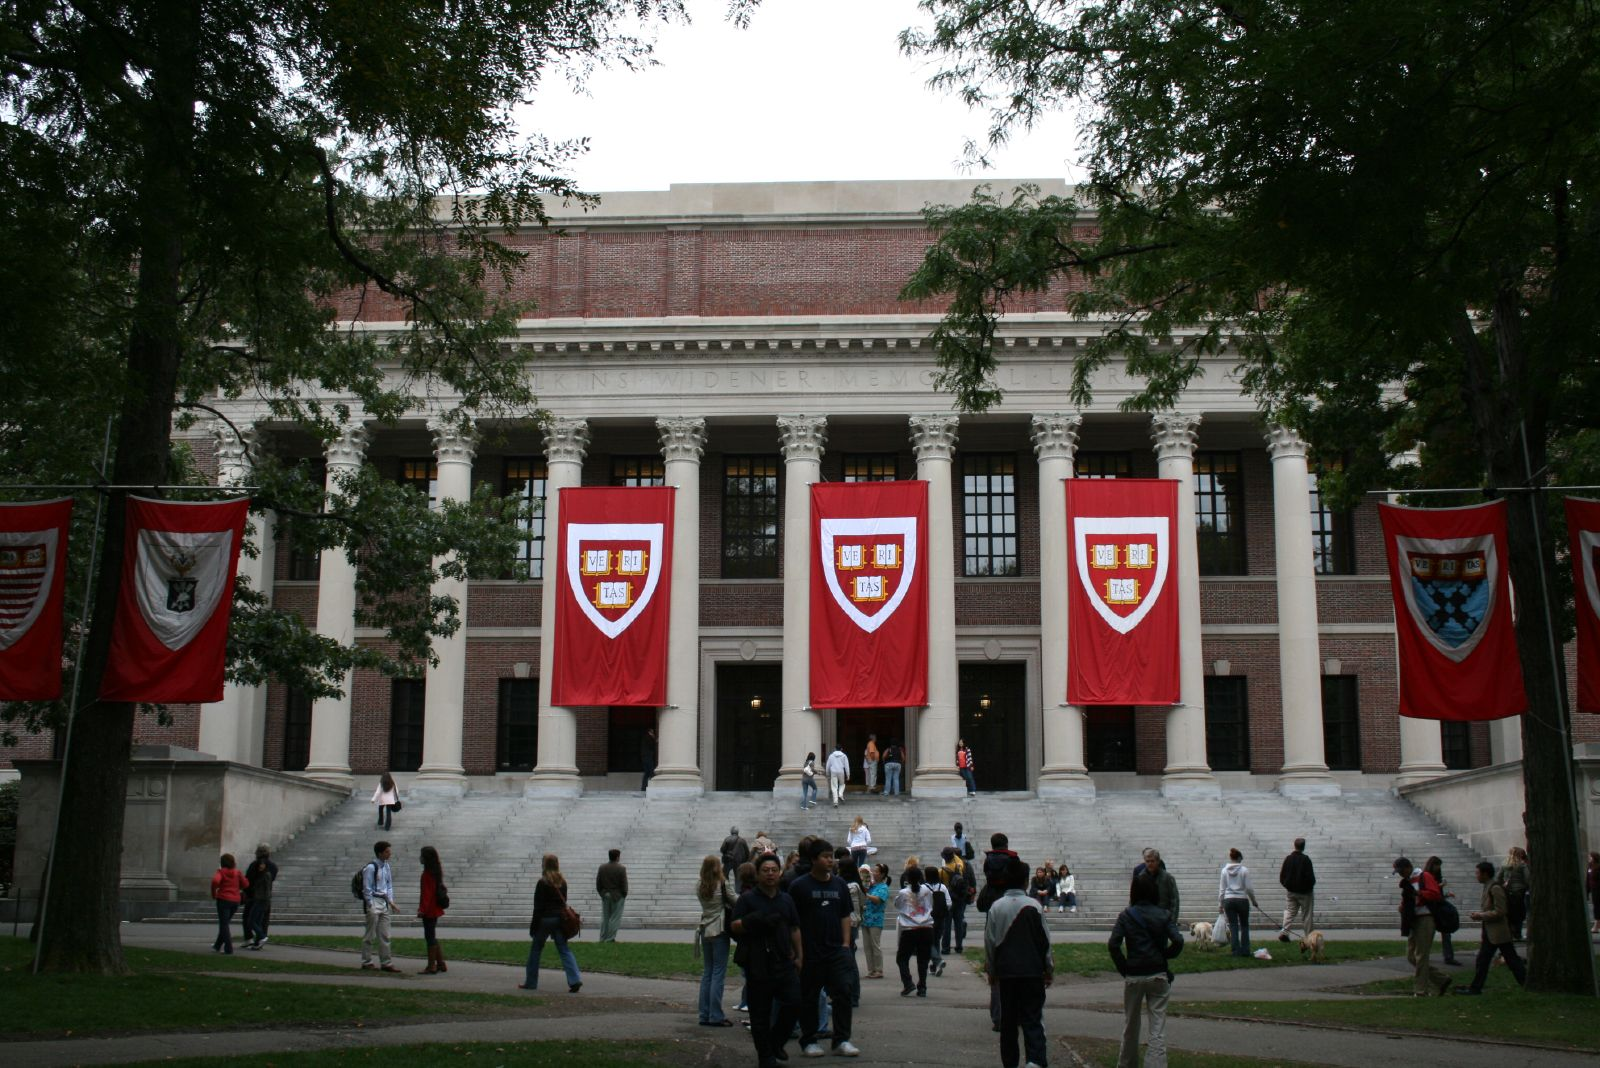 harvard s past discrimination against jews not relevant to claims of